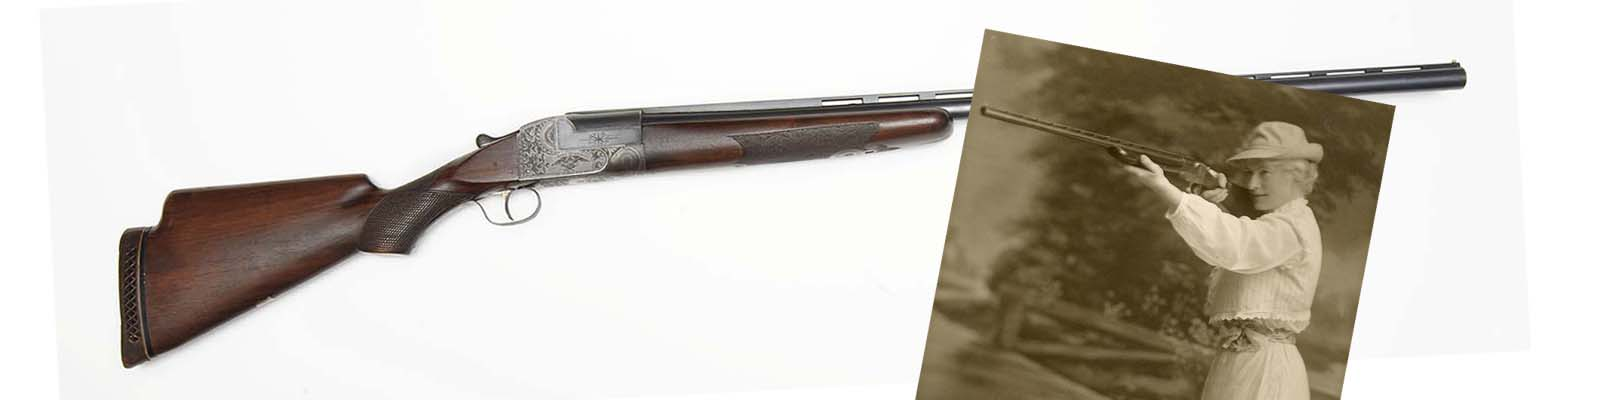 Ithaca Single Barrel Trap Gun, 12 gauge, Serial Number 264501, owned by Annie Oakley. Oakley with a rifle. 2008.10.1 and P.69.0932